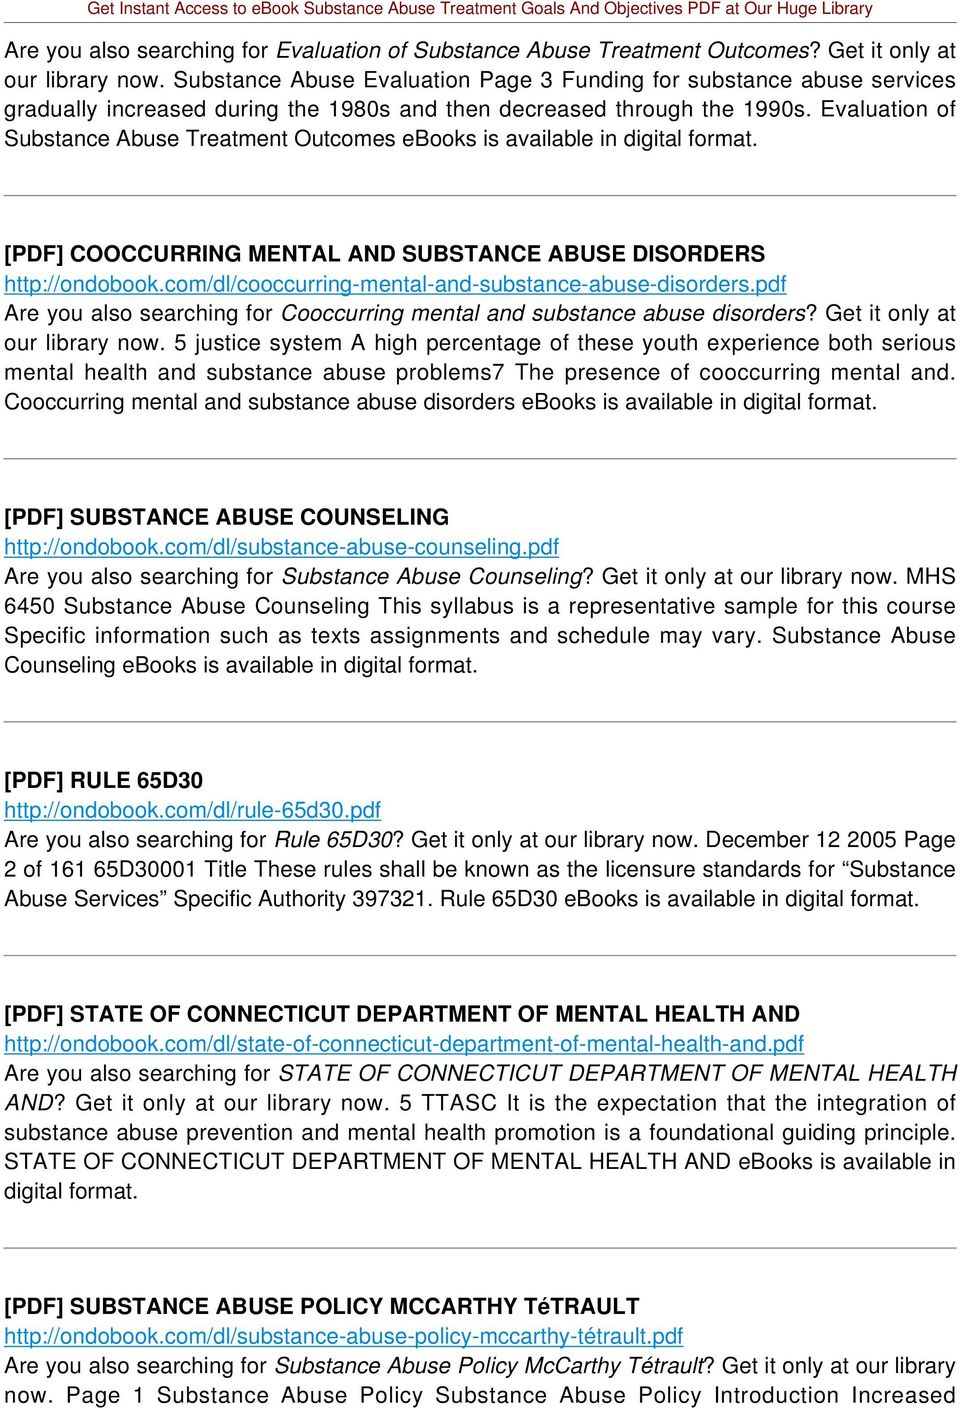 Evaluation of Substance Abuse Treatment Outcomes ebooks is available in digital format. [PDF] COOCCURRING MENTAL AND SUBSTANCE ABUSE DISORDERS http://ondobook.